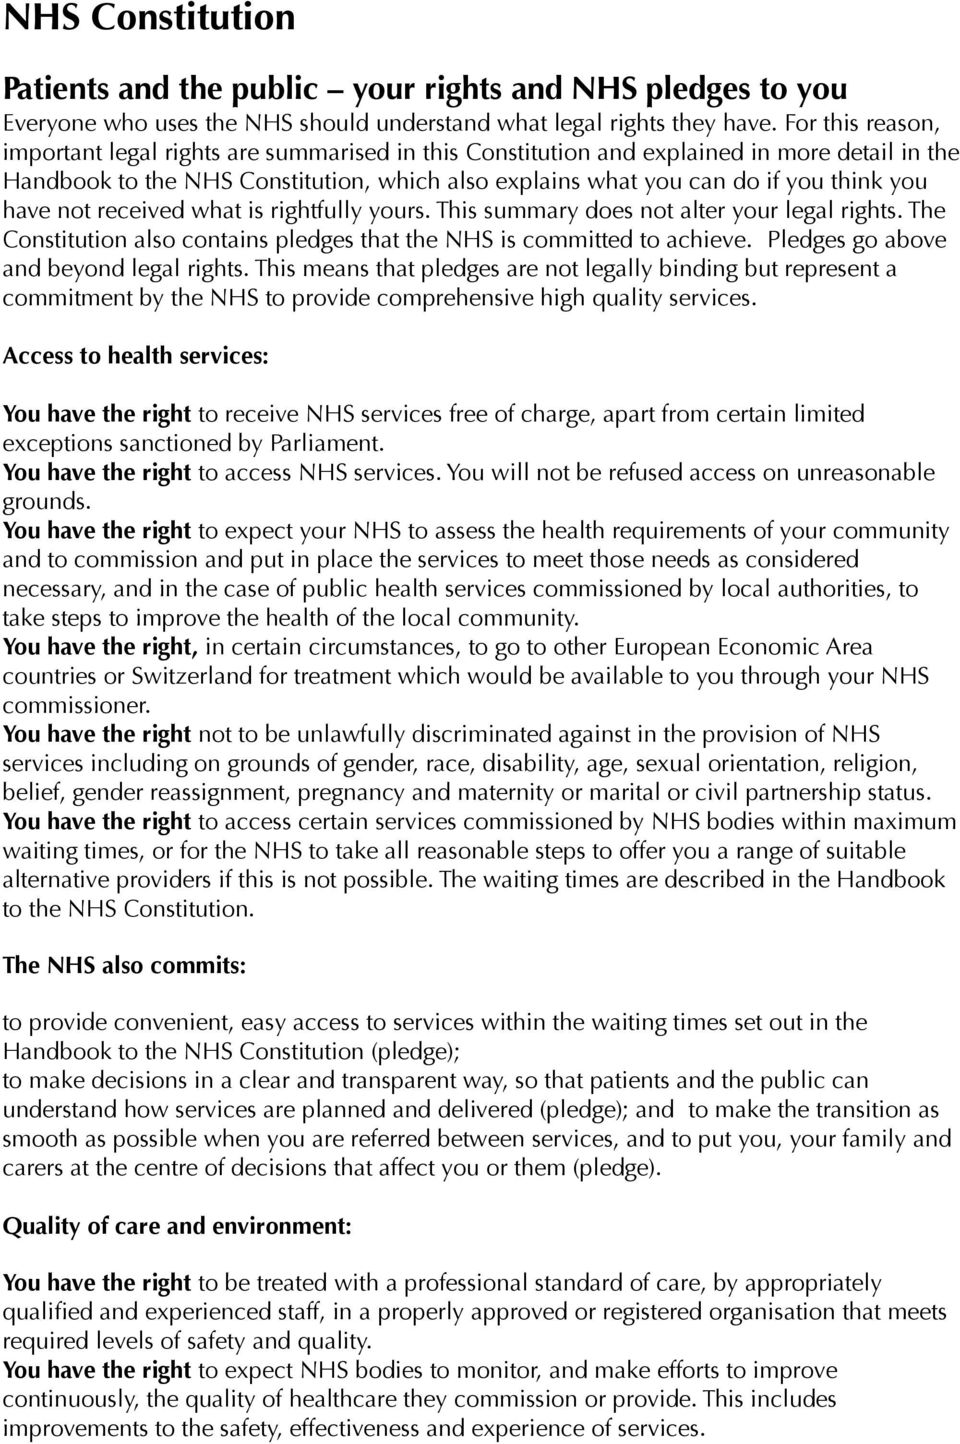 have not received what is rightfully yours. This summary does not alter your legal rights. The Constitution also contains pledges that the NHS is committed to achieve.